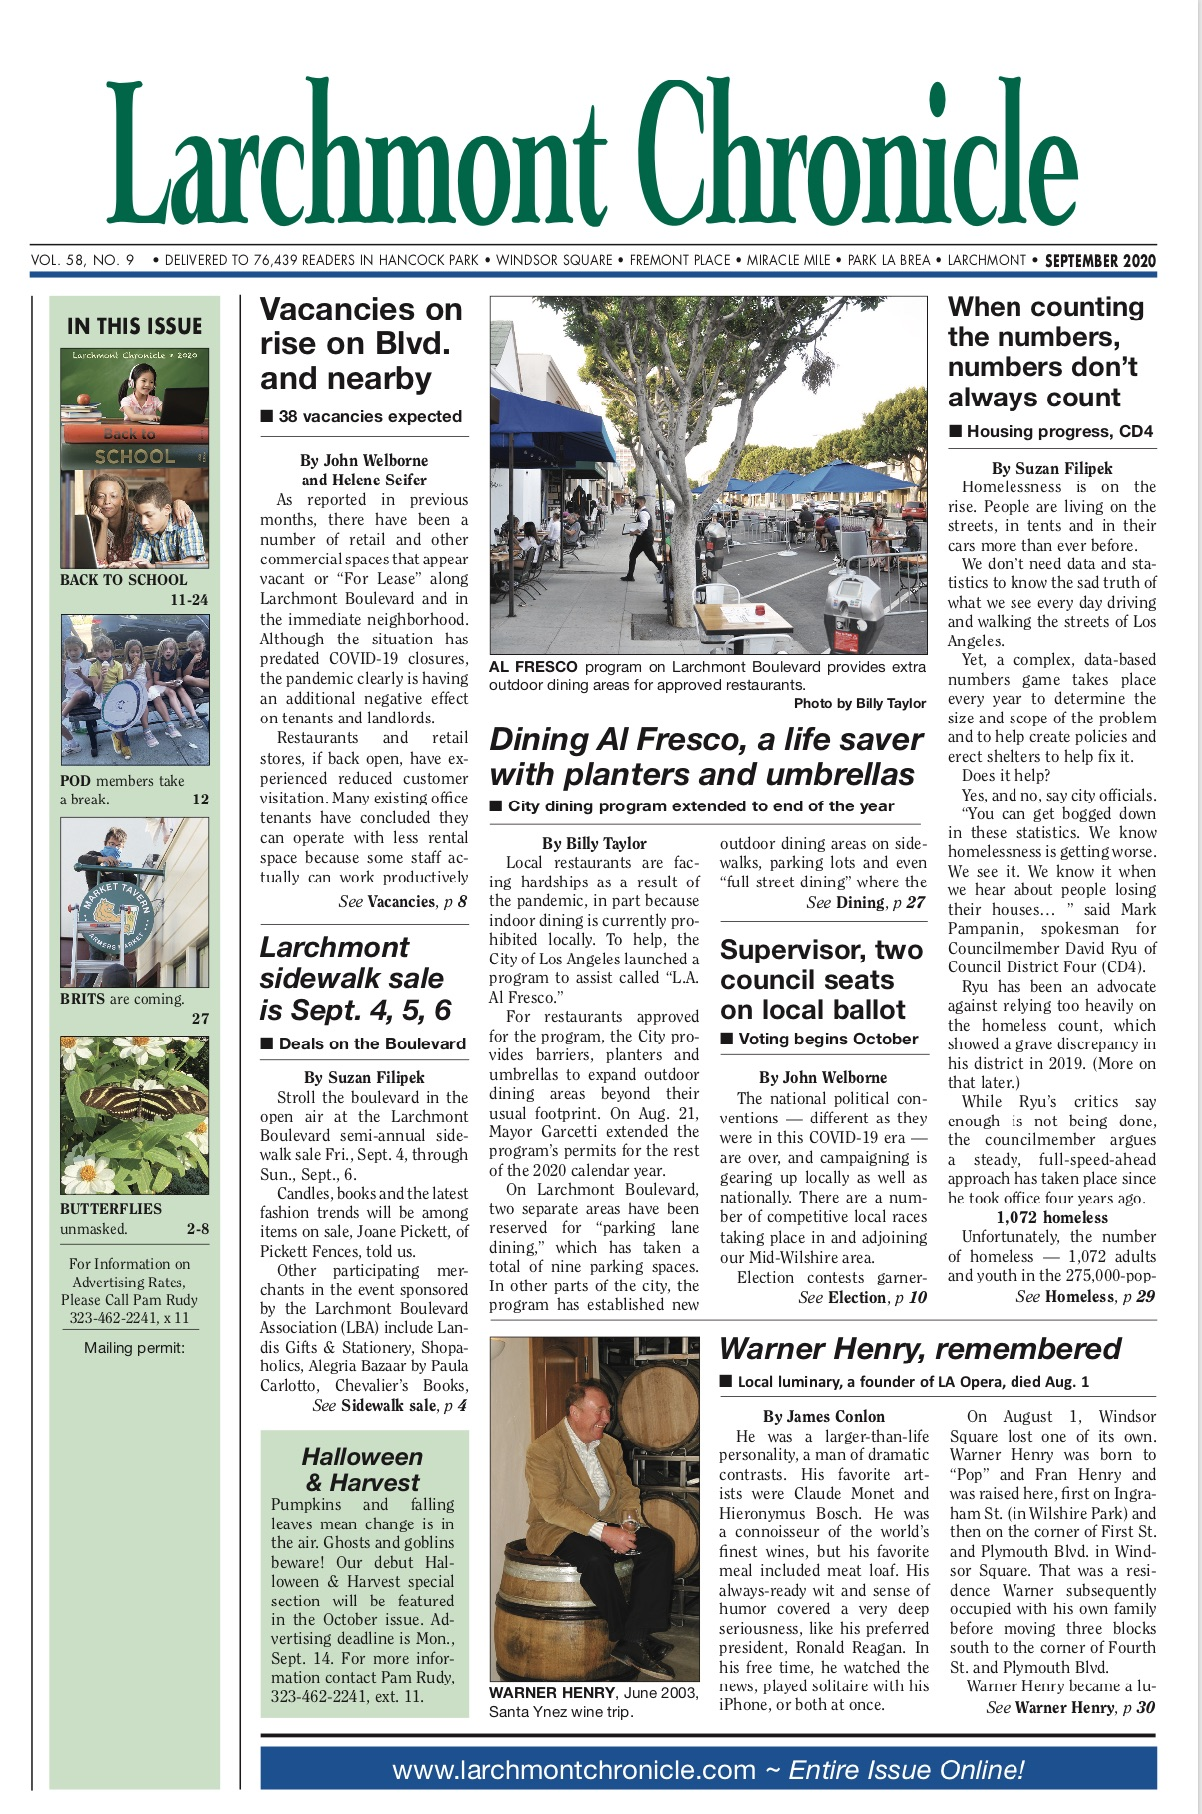 Larchmont Chronicle September 2020 full issue